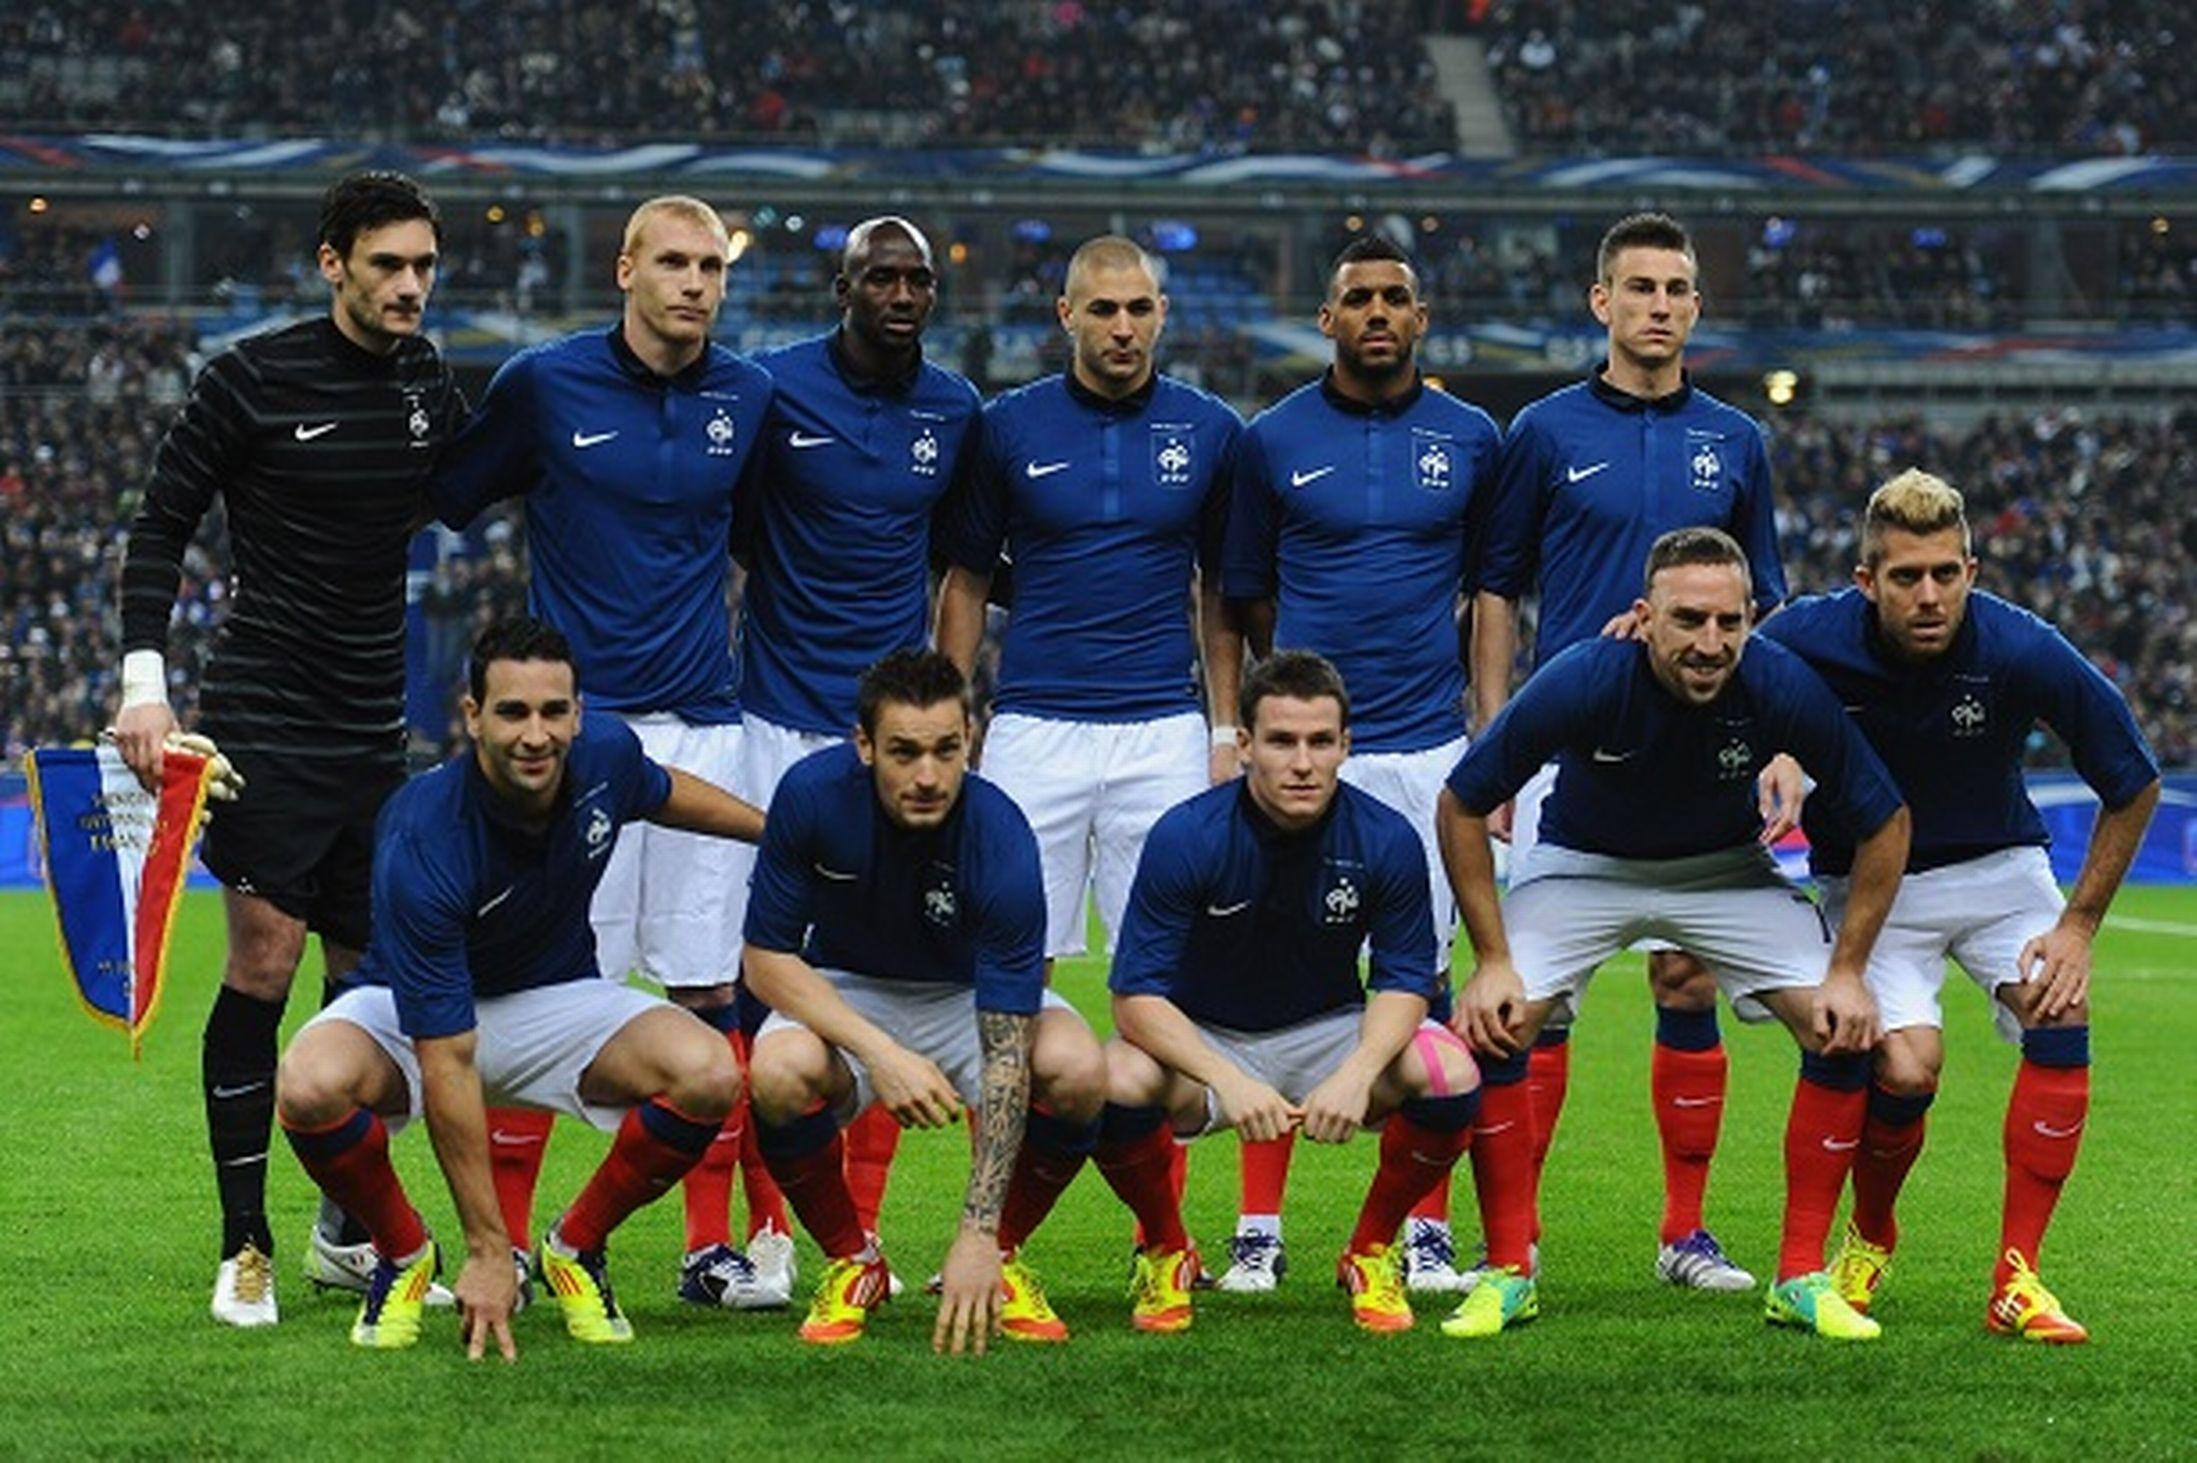 How can i meet my favorite football team? France Soccer Logo Wallpapers Wallpaper Cave